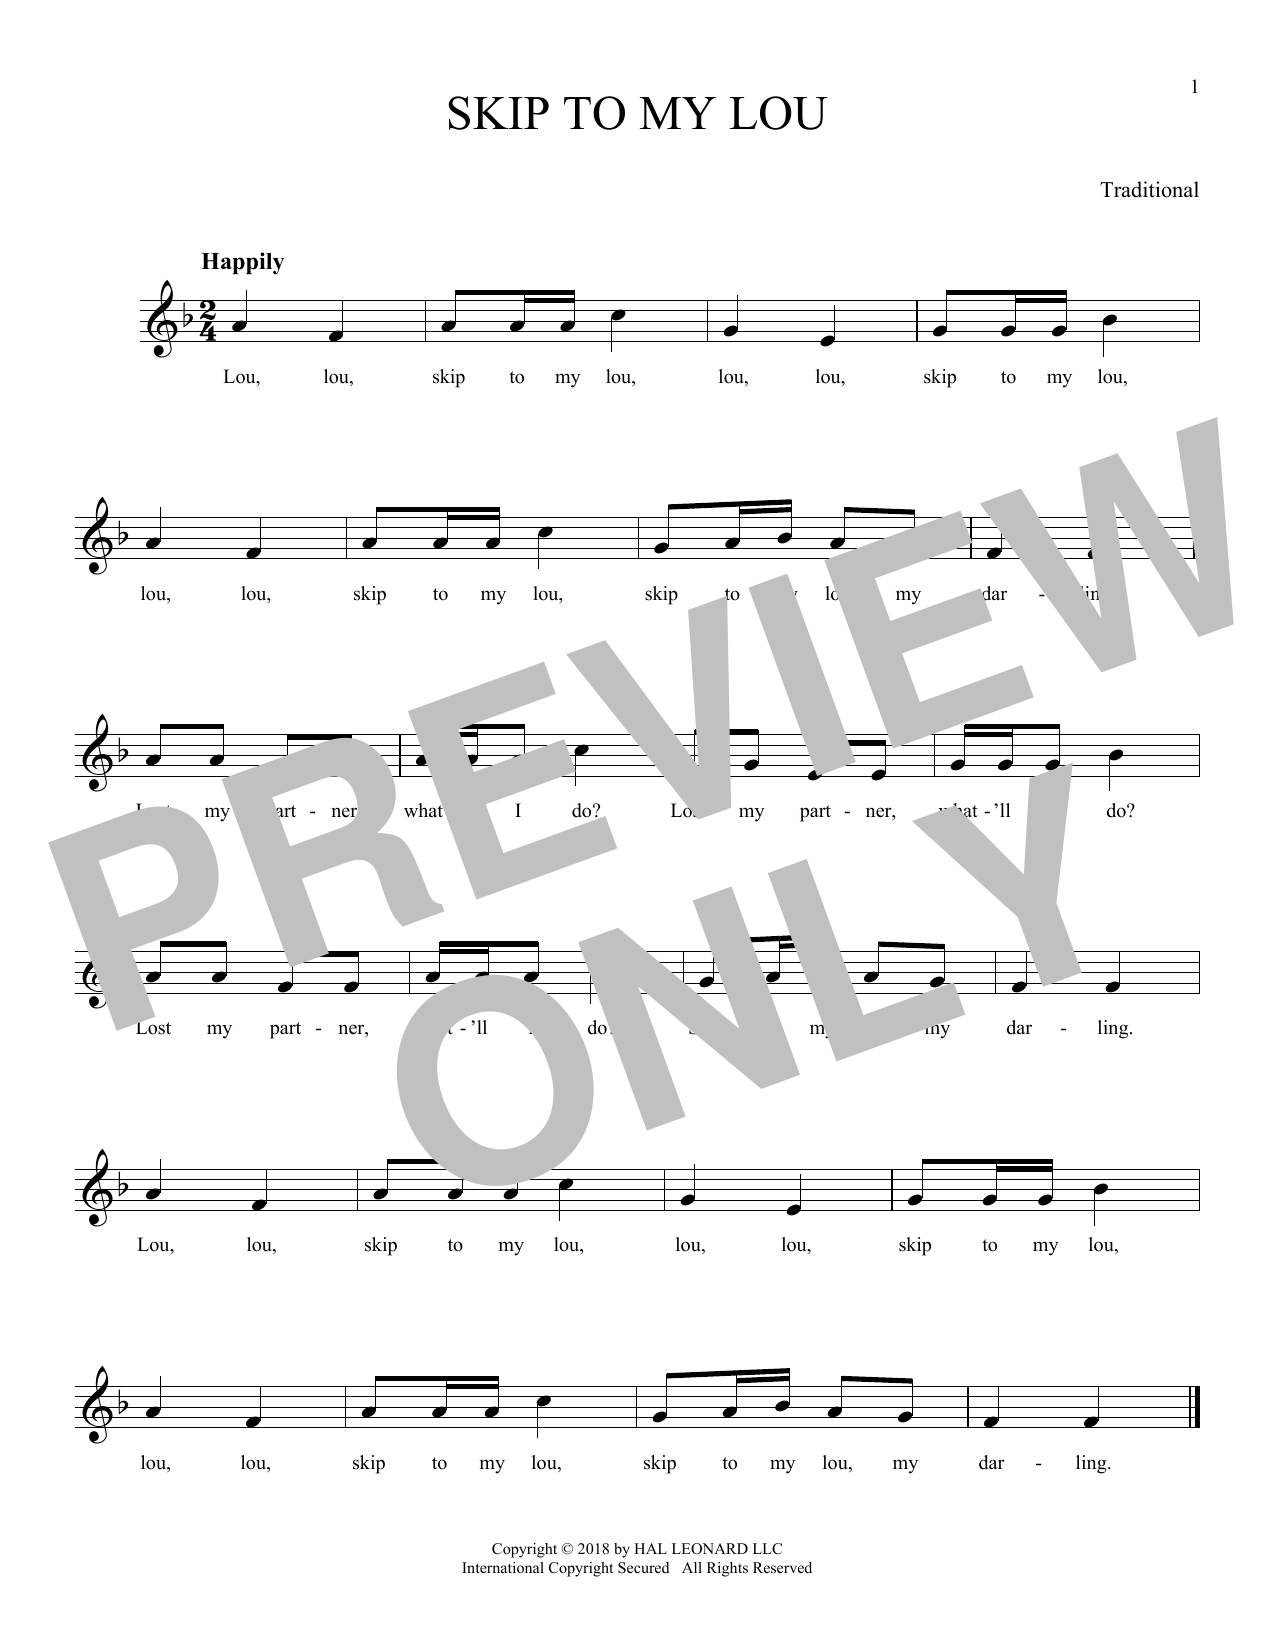 Traditional Skip To My Lou Sheet Music Notes Chords Printable